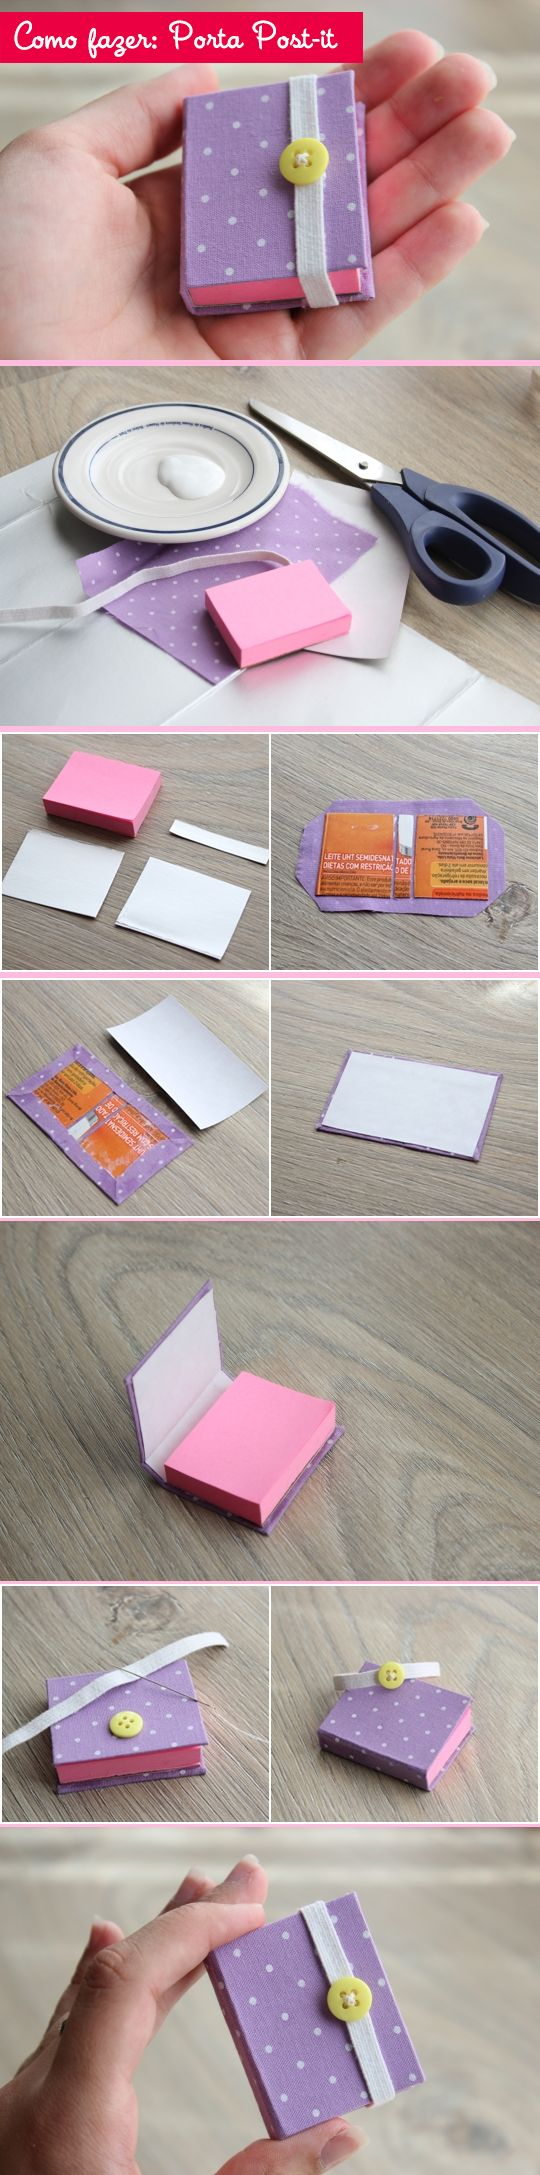 If you have scads o'time, you could make one of these to protect your post-its!